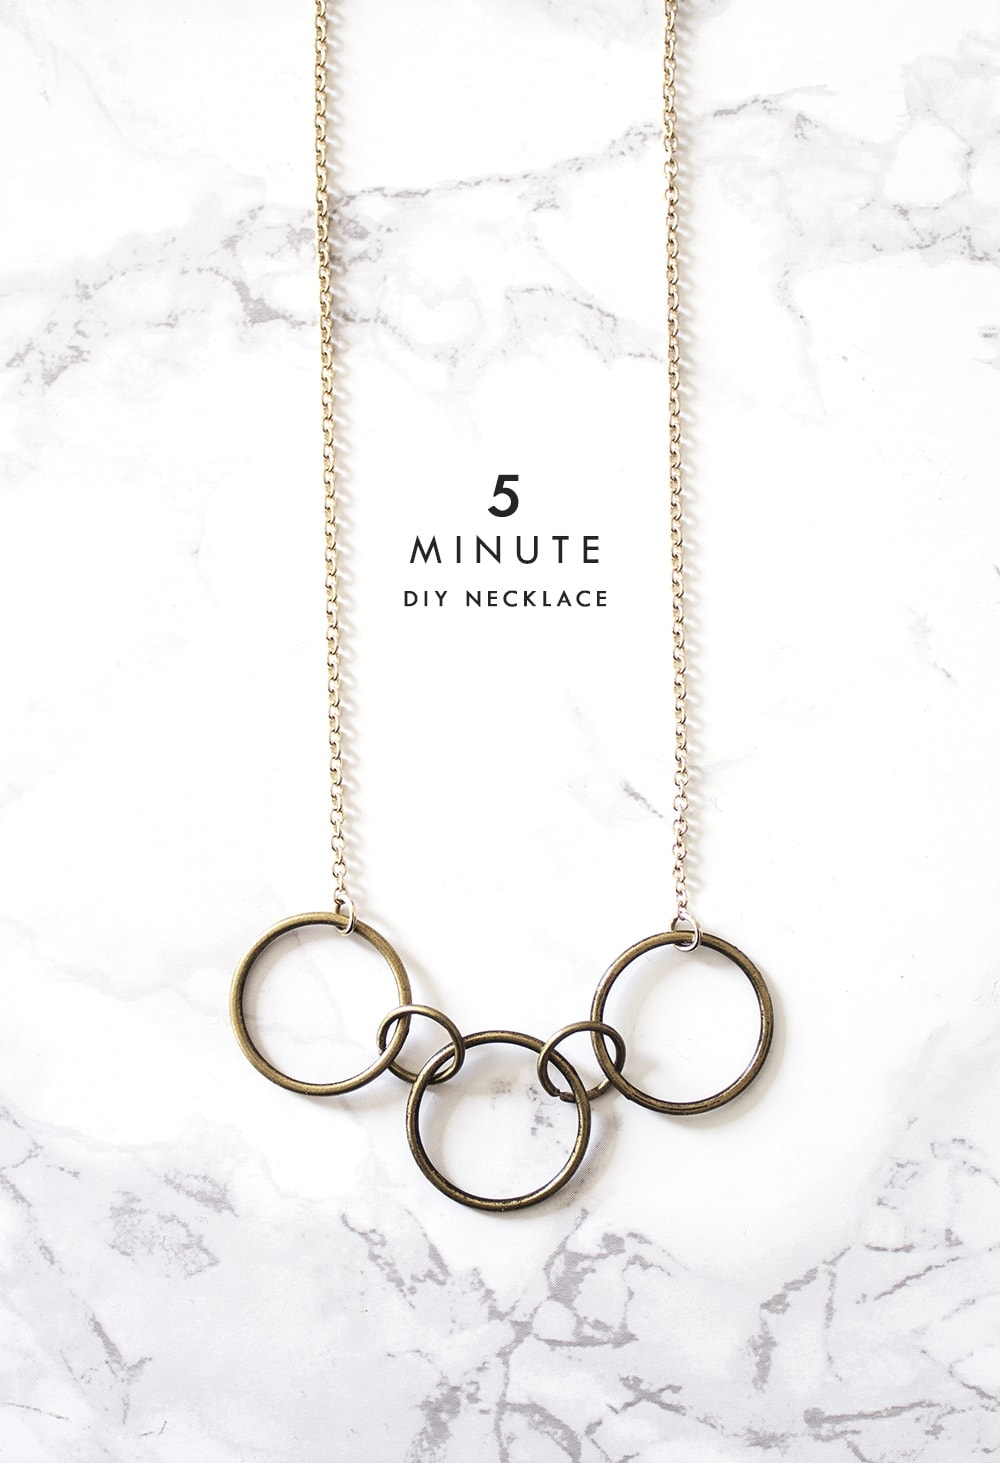 5 minute DIY necklace